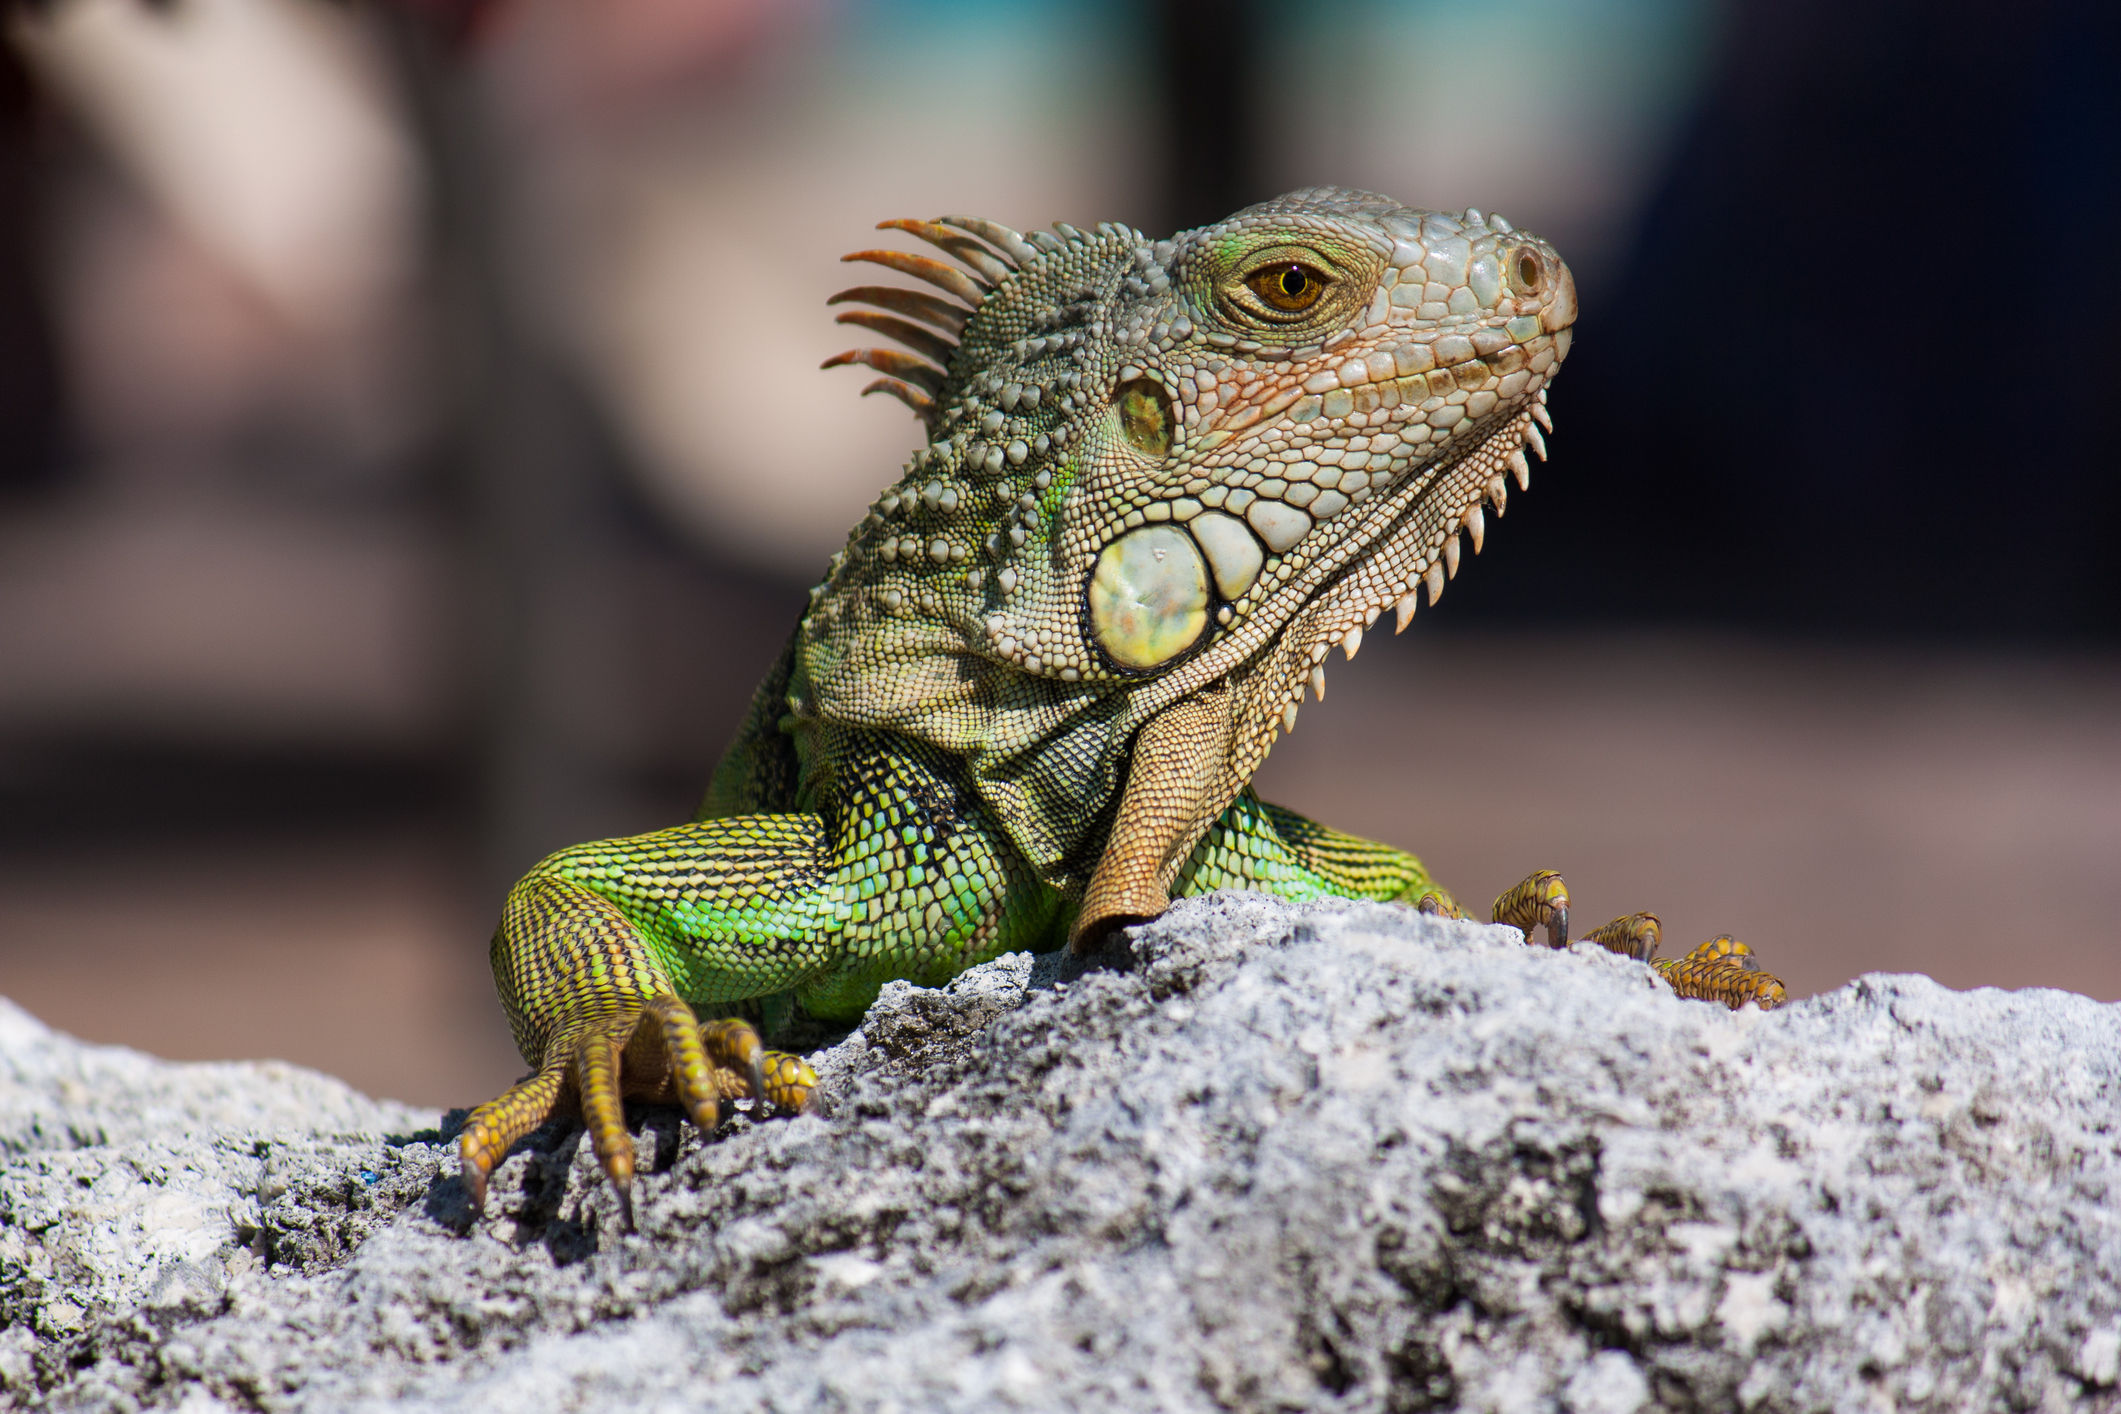 Yikes! Florida Is Being Overrun With Iguanas